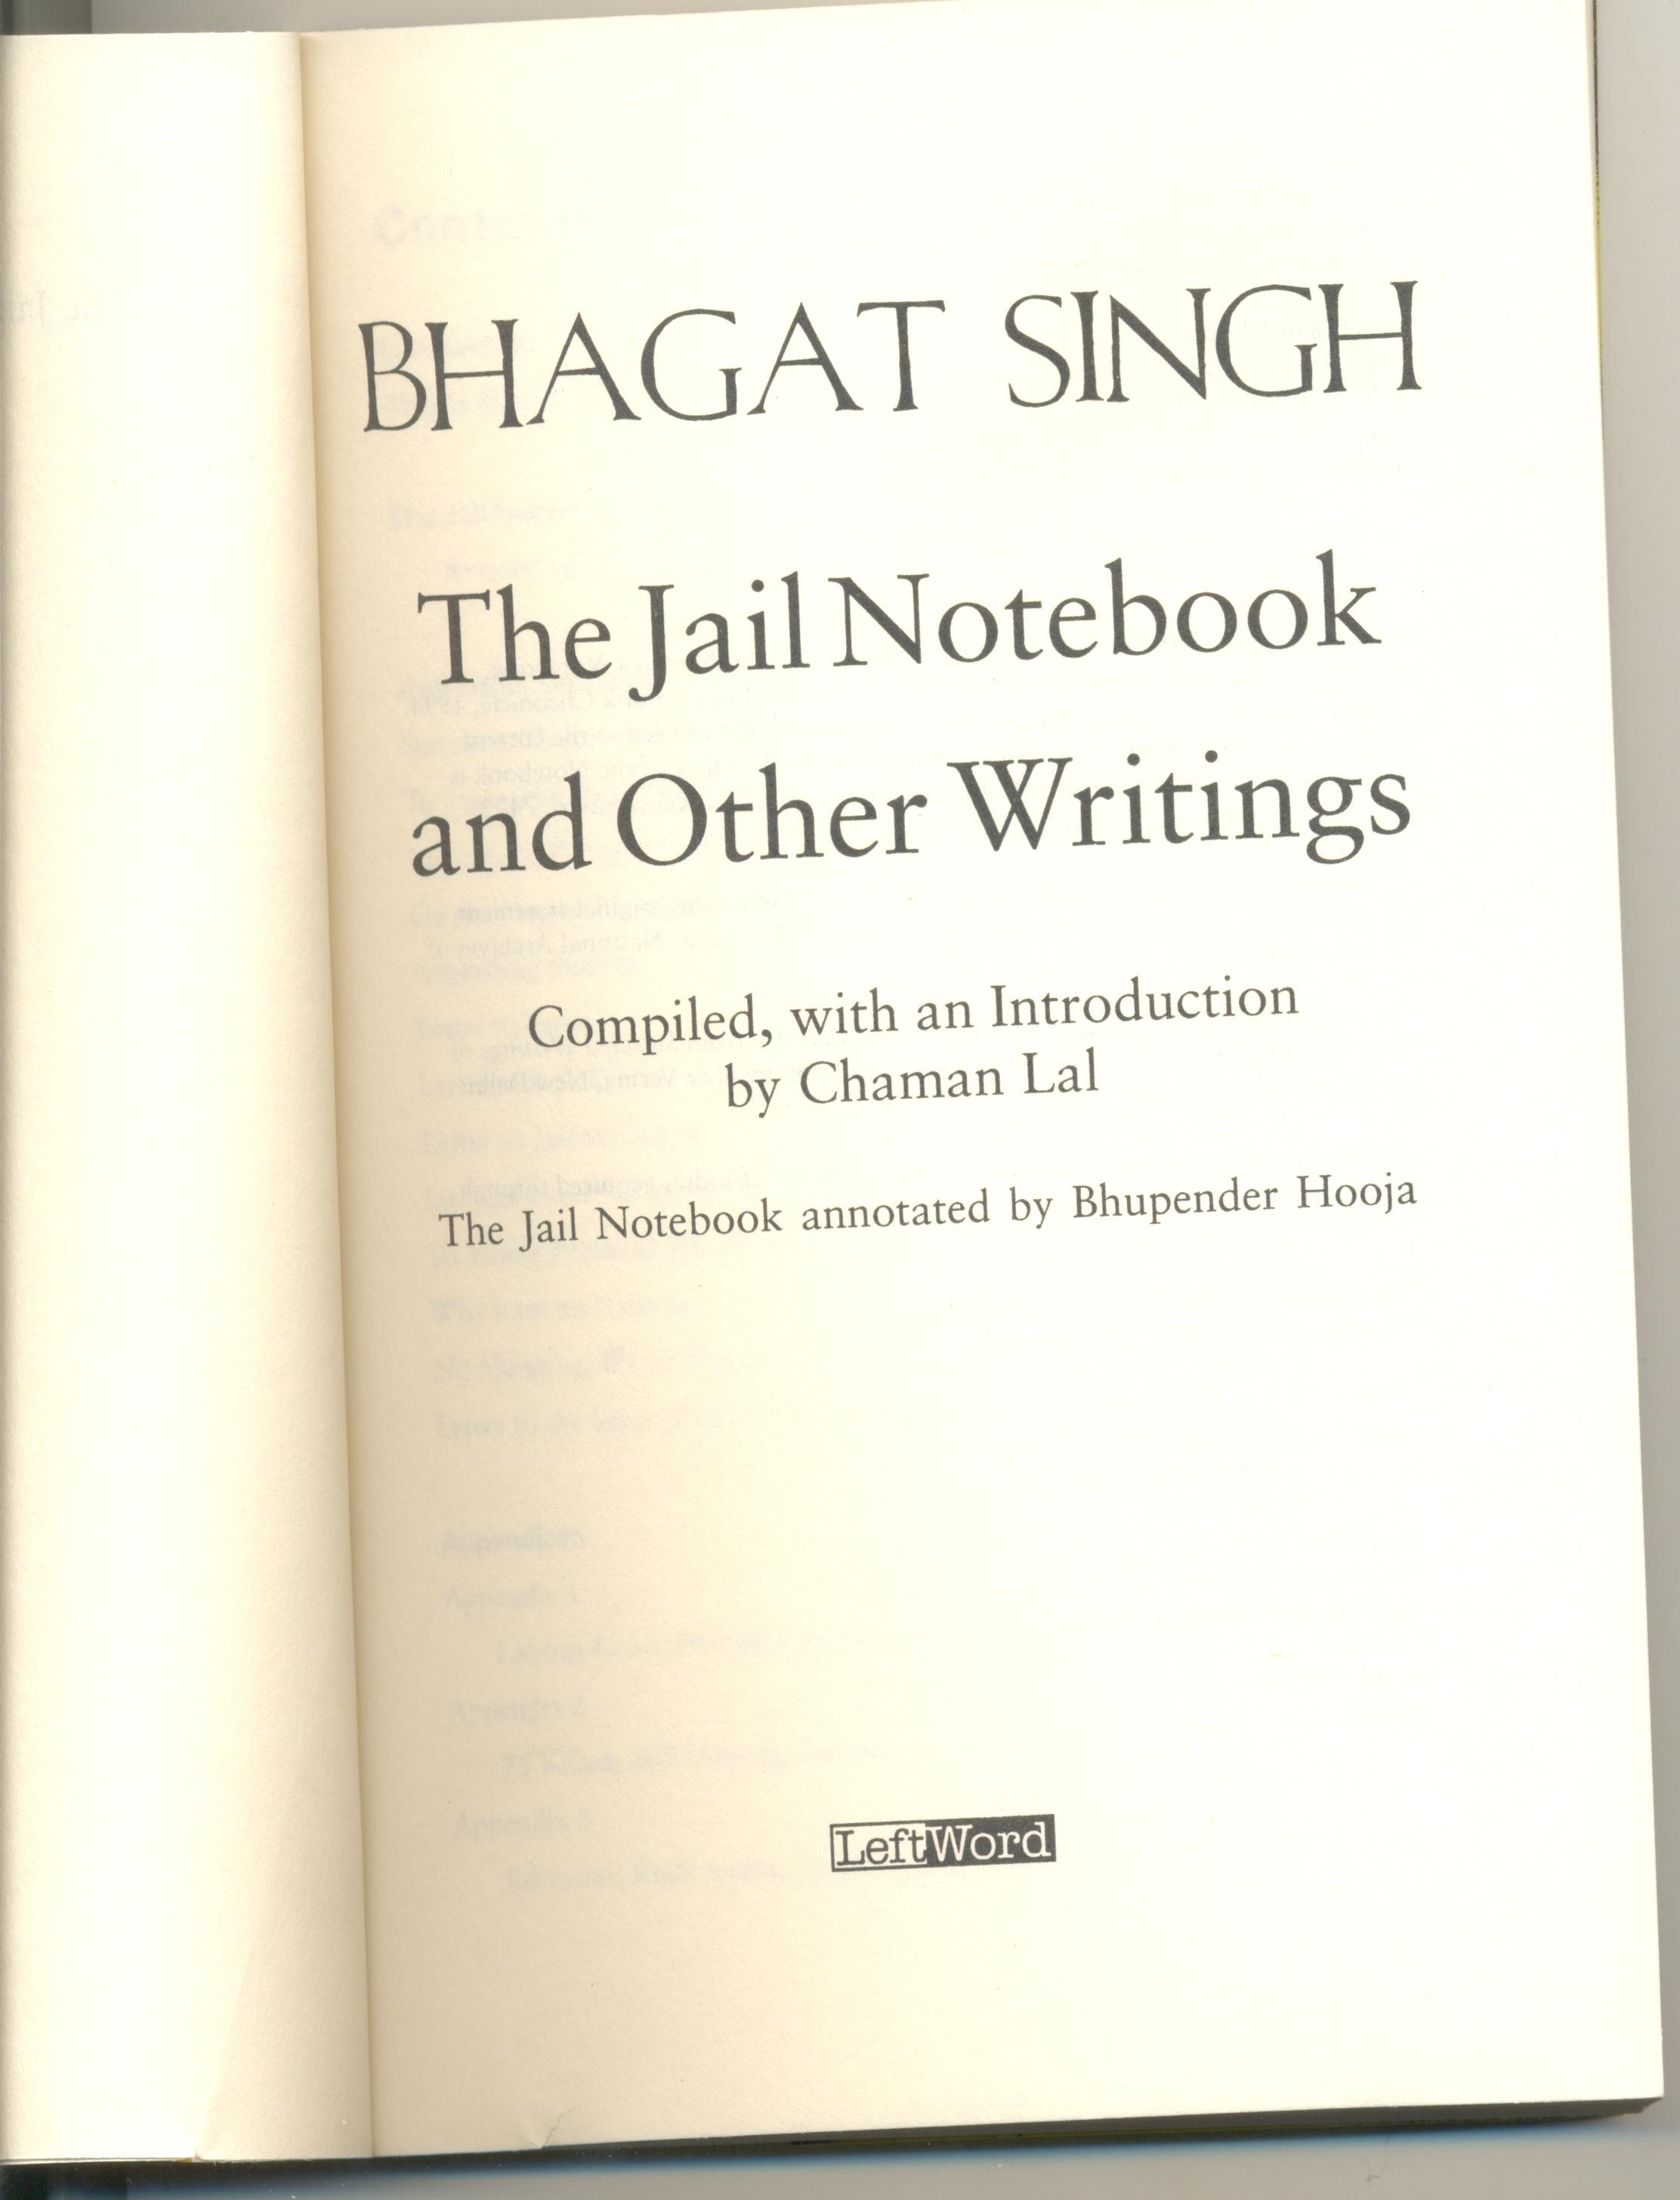 a short publication history of bhagat singh s jail notebook a short publication history of bhagat singh s jail notebook bhagat singh the socialist revolutionary thinker